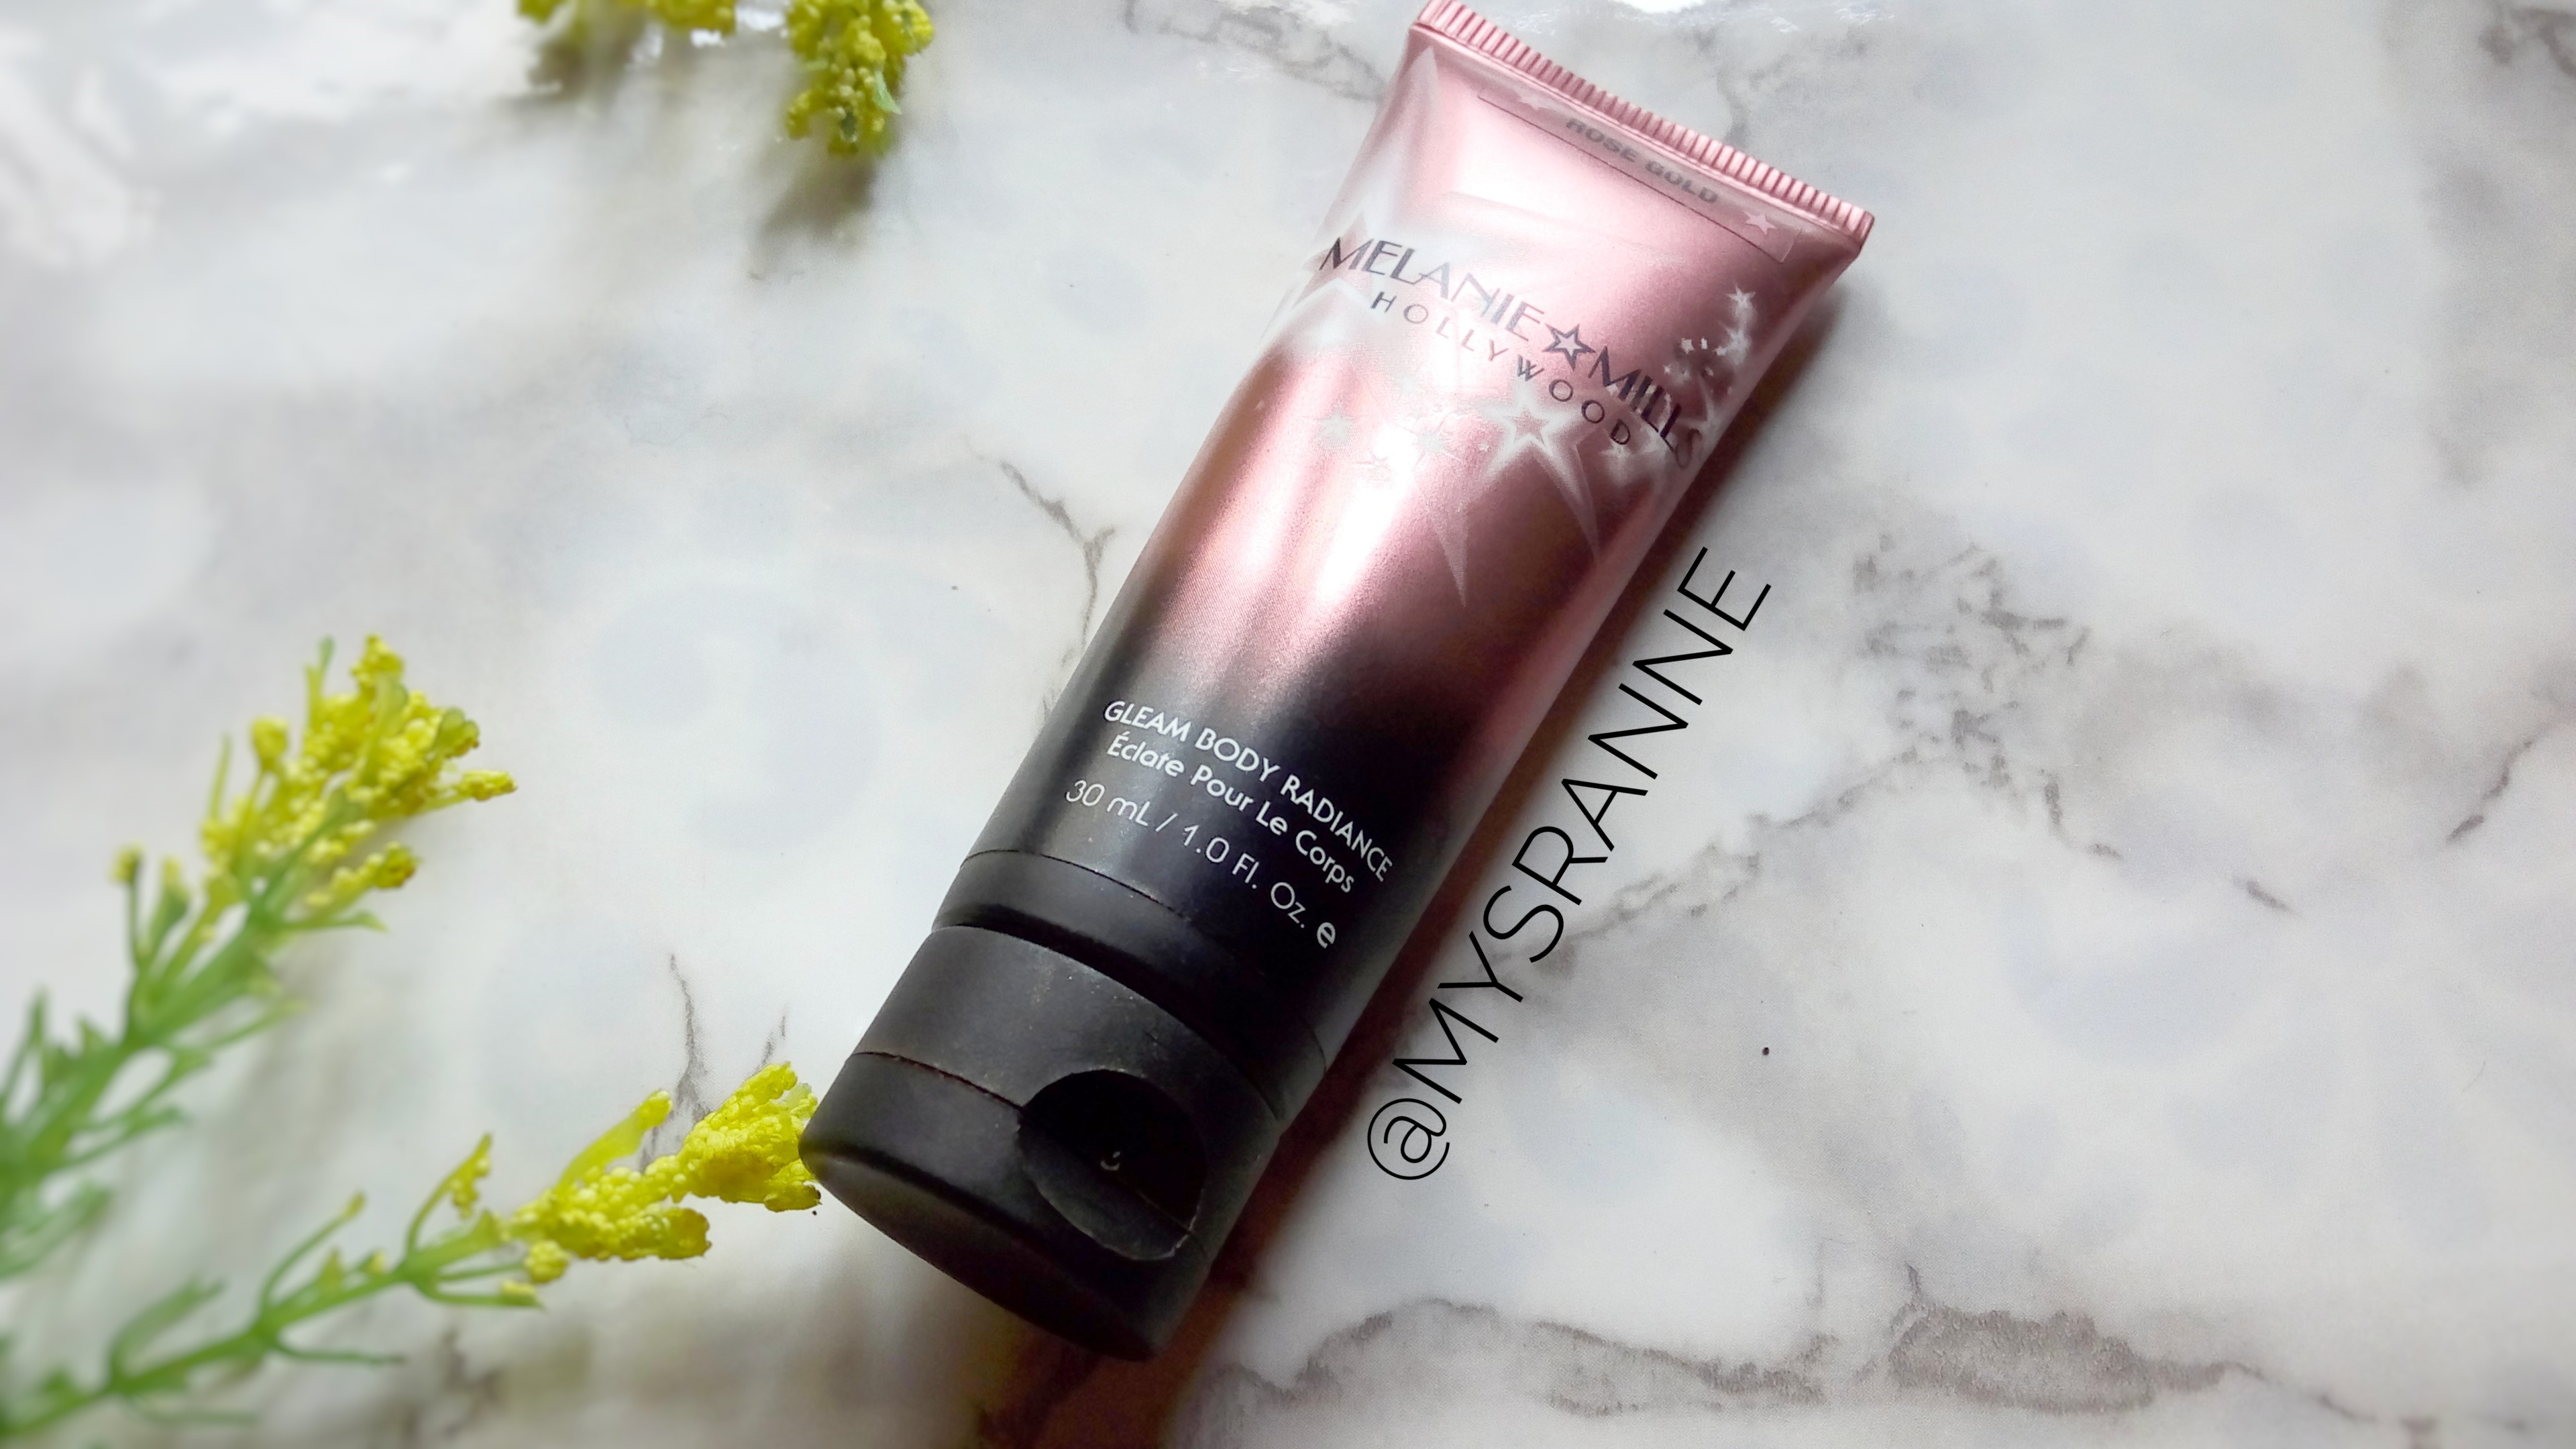 MELANIE MILLS HOLLYWOOD GLEAM BODY RADIANCE IN ROSE GOLD (Review & Swatches)